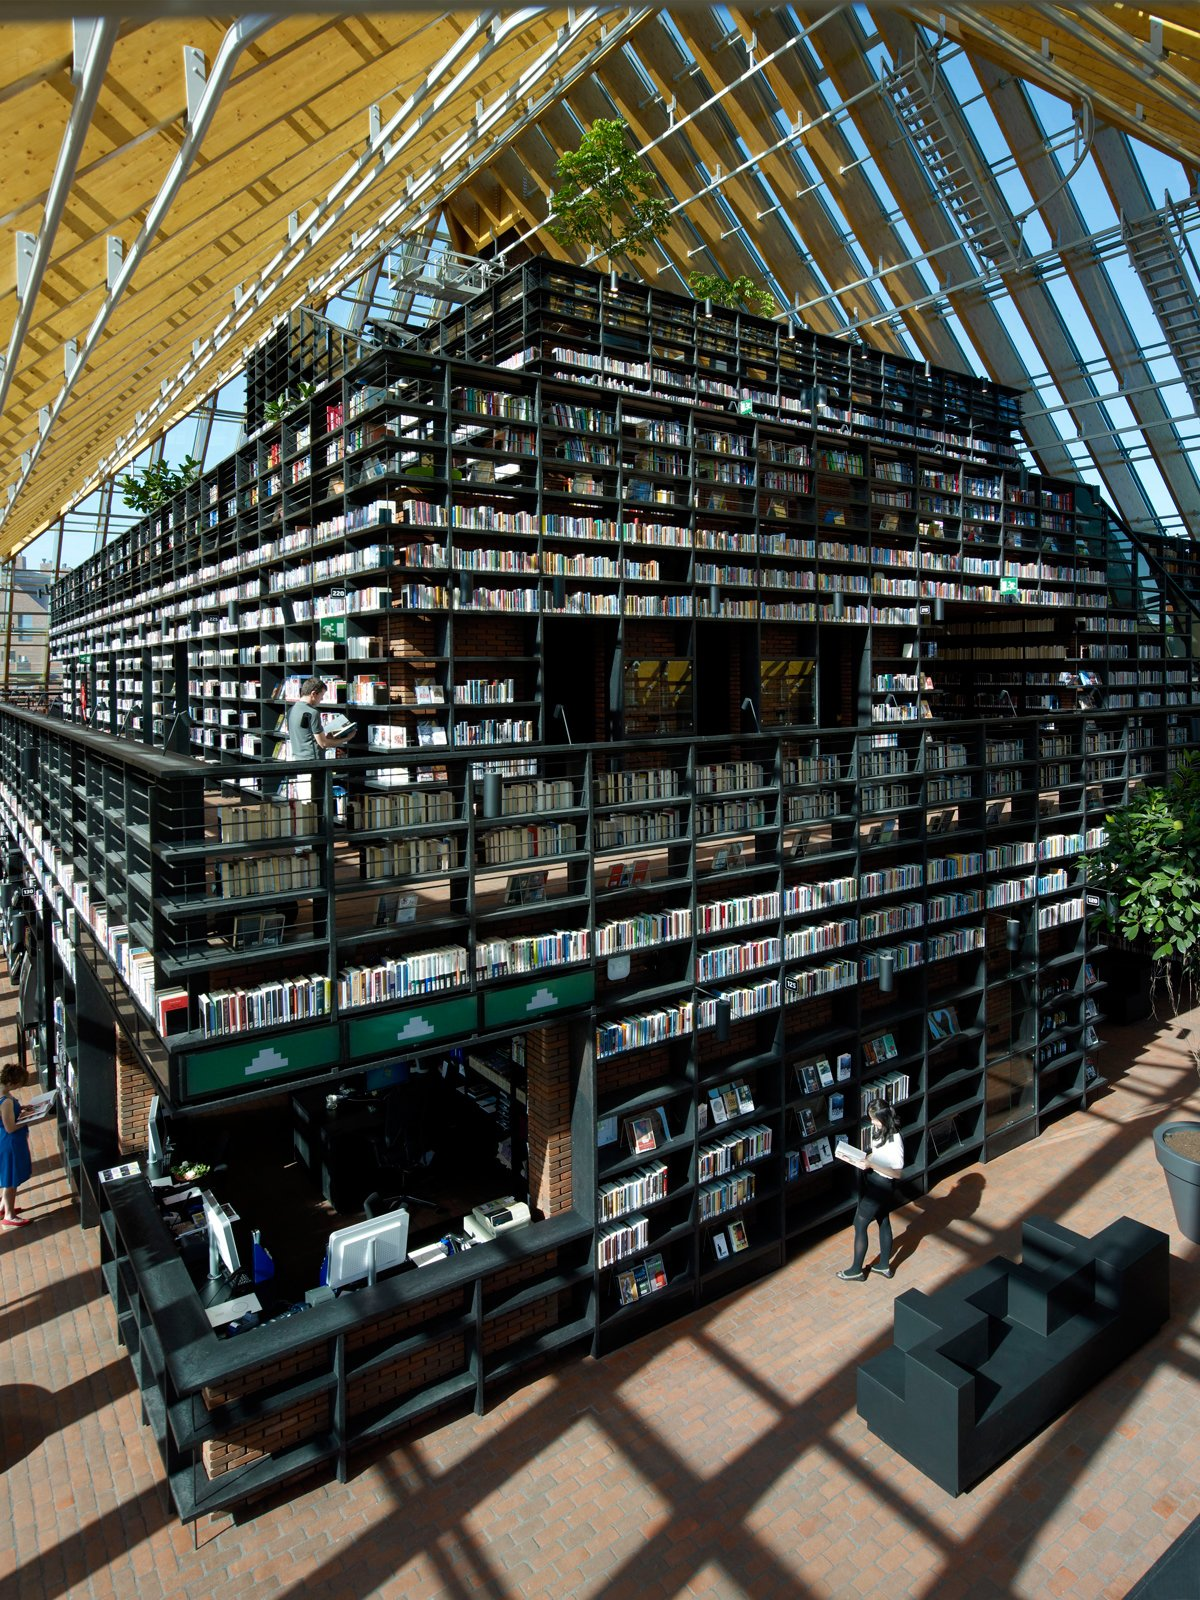 """Architecture: Book Mountain, Spijkenisse, the NetherlandsFor optimum browsing, a veritable mountain of bookshelves created by MVRDV houses over a quarter mile of passages through the structure. Perched at the top is a reading room and cafe area with panoramic views through the transparent roof. Photo by Jeroen Musch.  Search """"mvrdvs balancing barn"""""""" from Contenders for Designs of the Year Announced"""